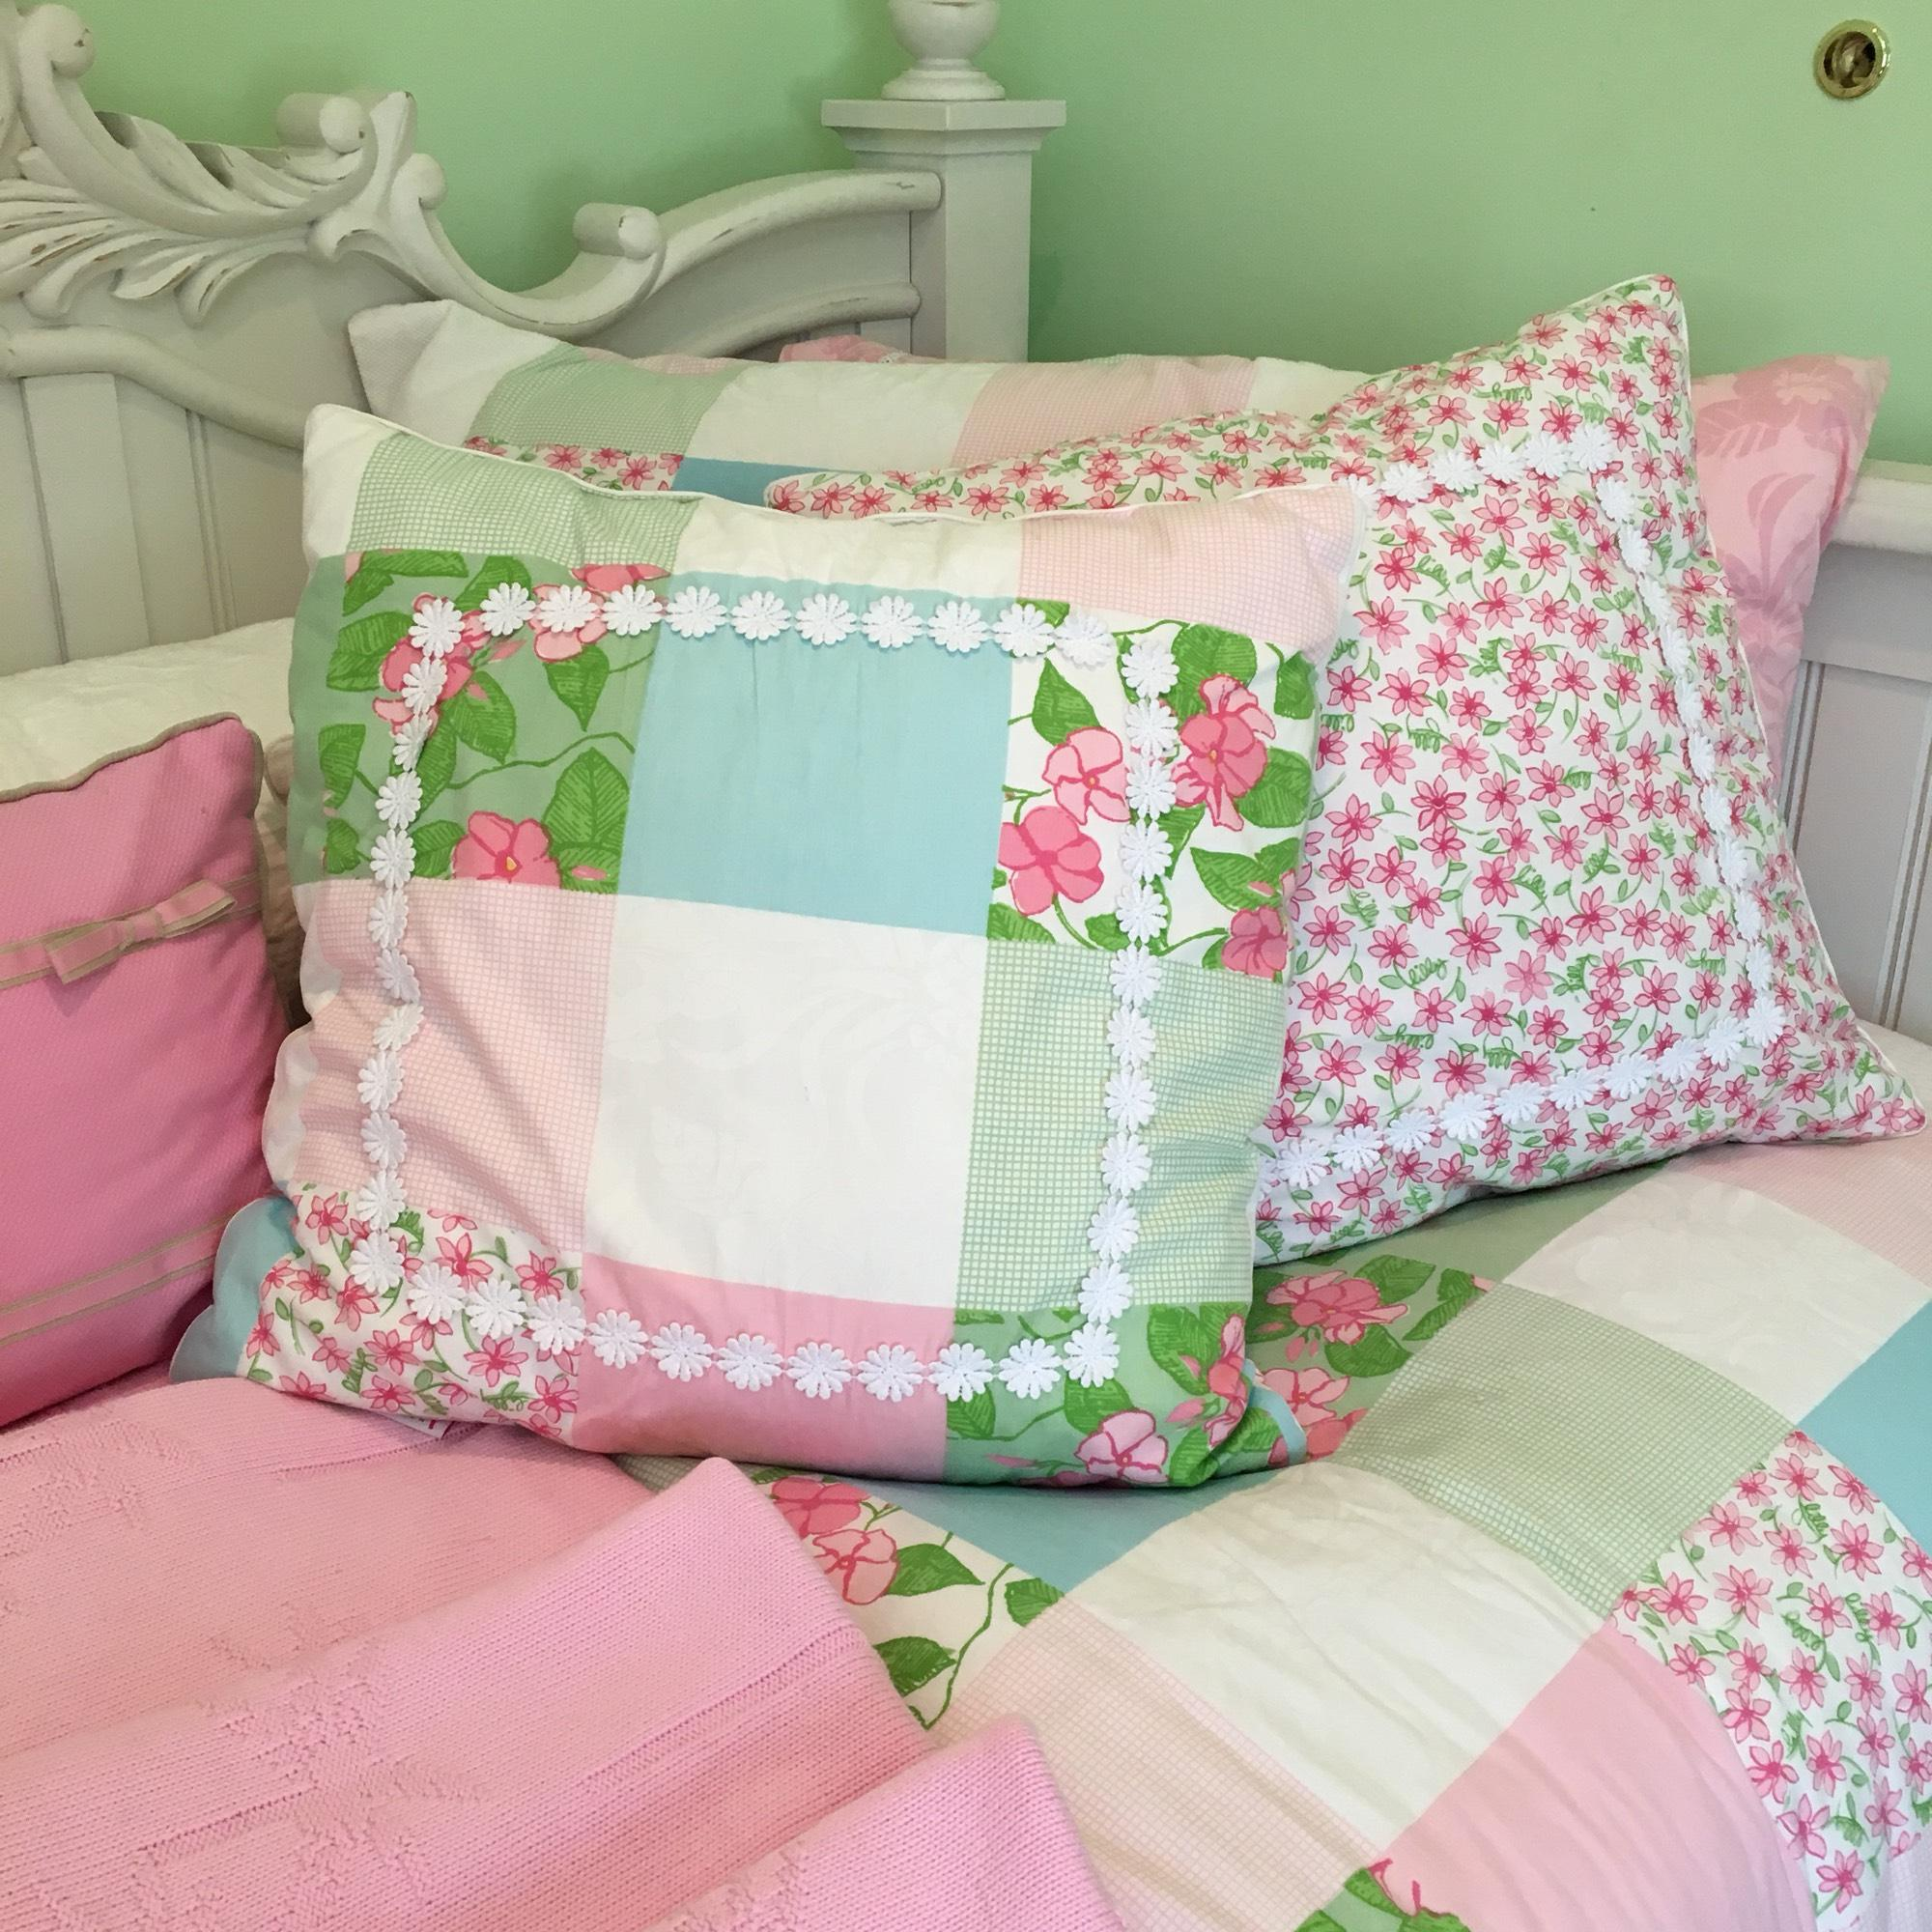 Lilly Pulitzer RARE Patchwork Bedding Set - 42% Off Retail